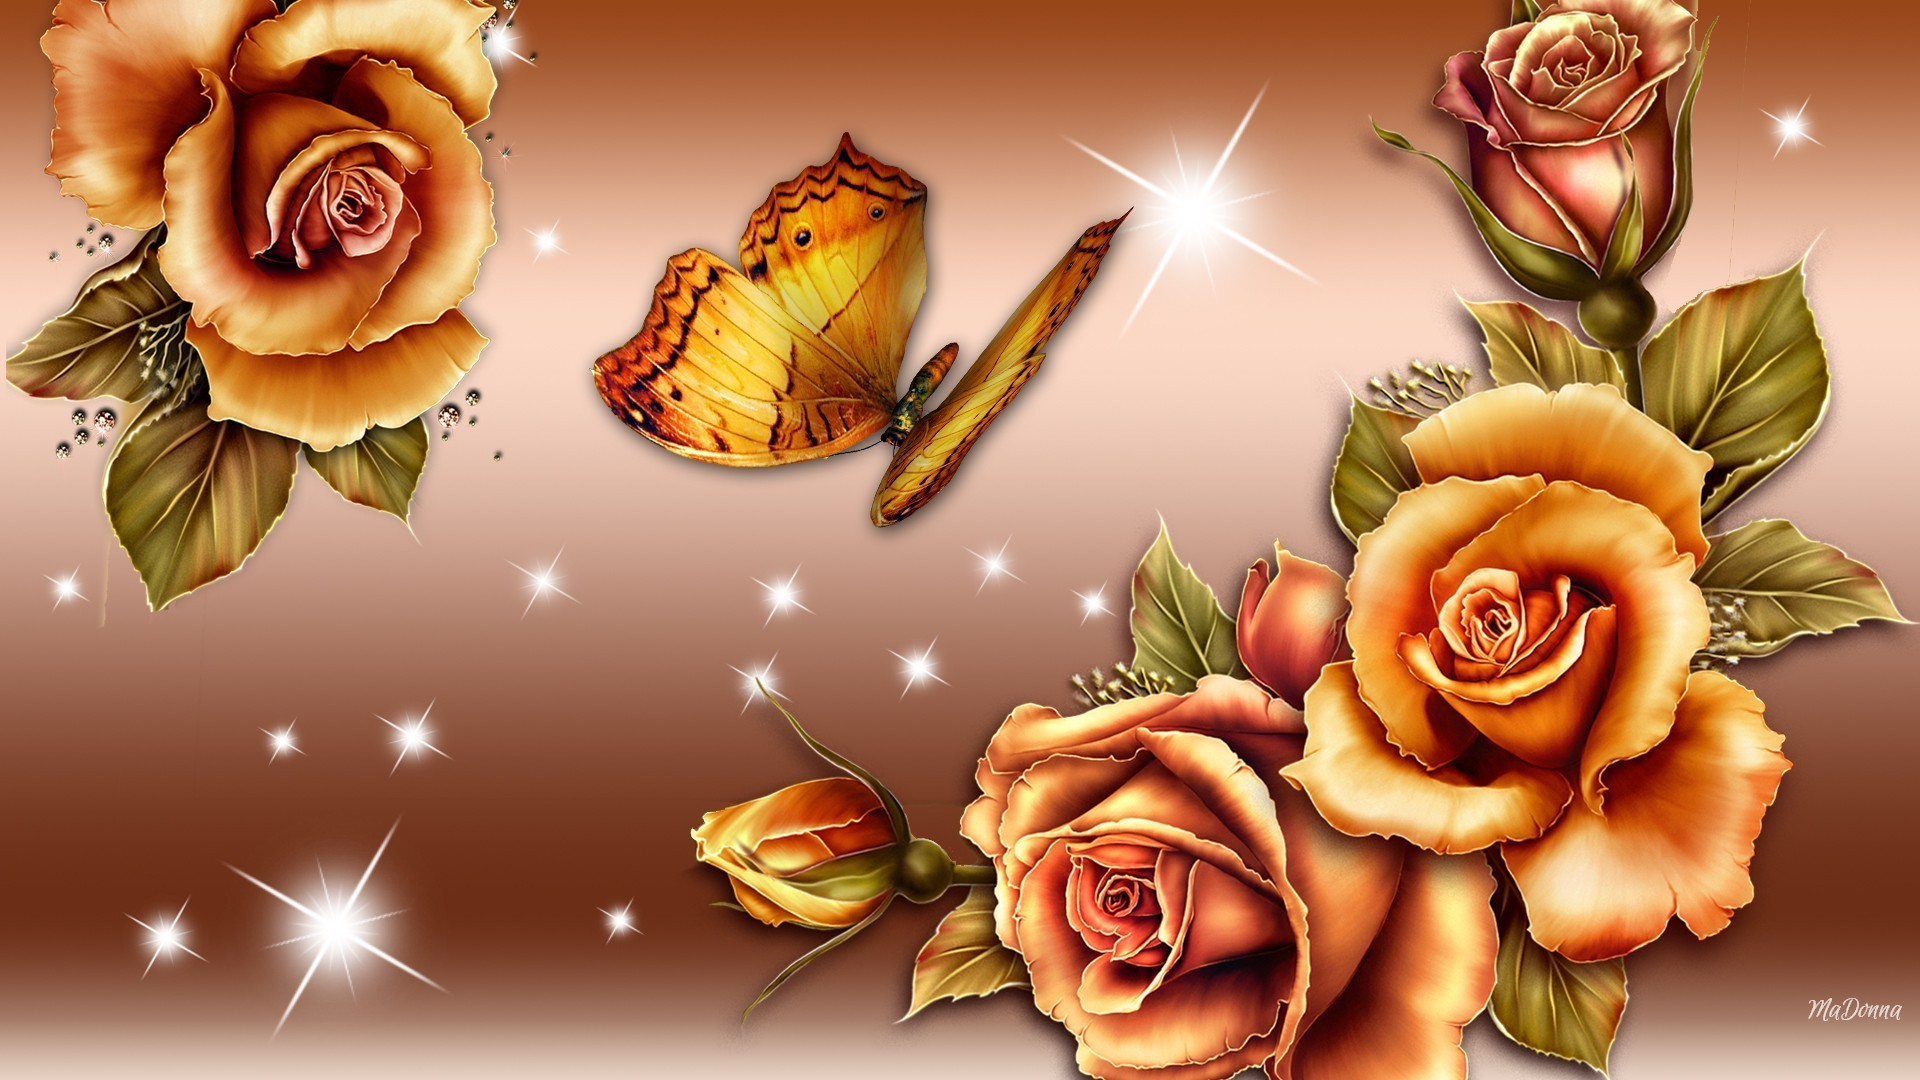 Gradient Tag – Butterfly Gold Shine Glow Roses Bronze Gradient Beautirful  Golden Lovely Nice Flower Hd